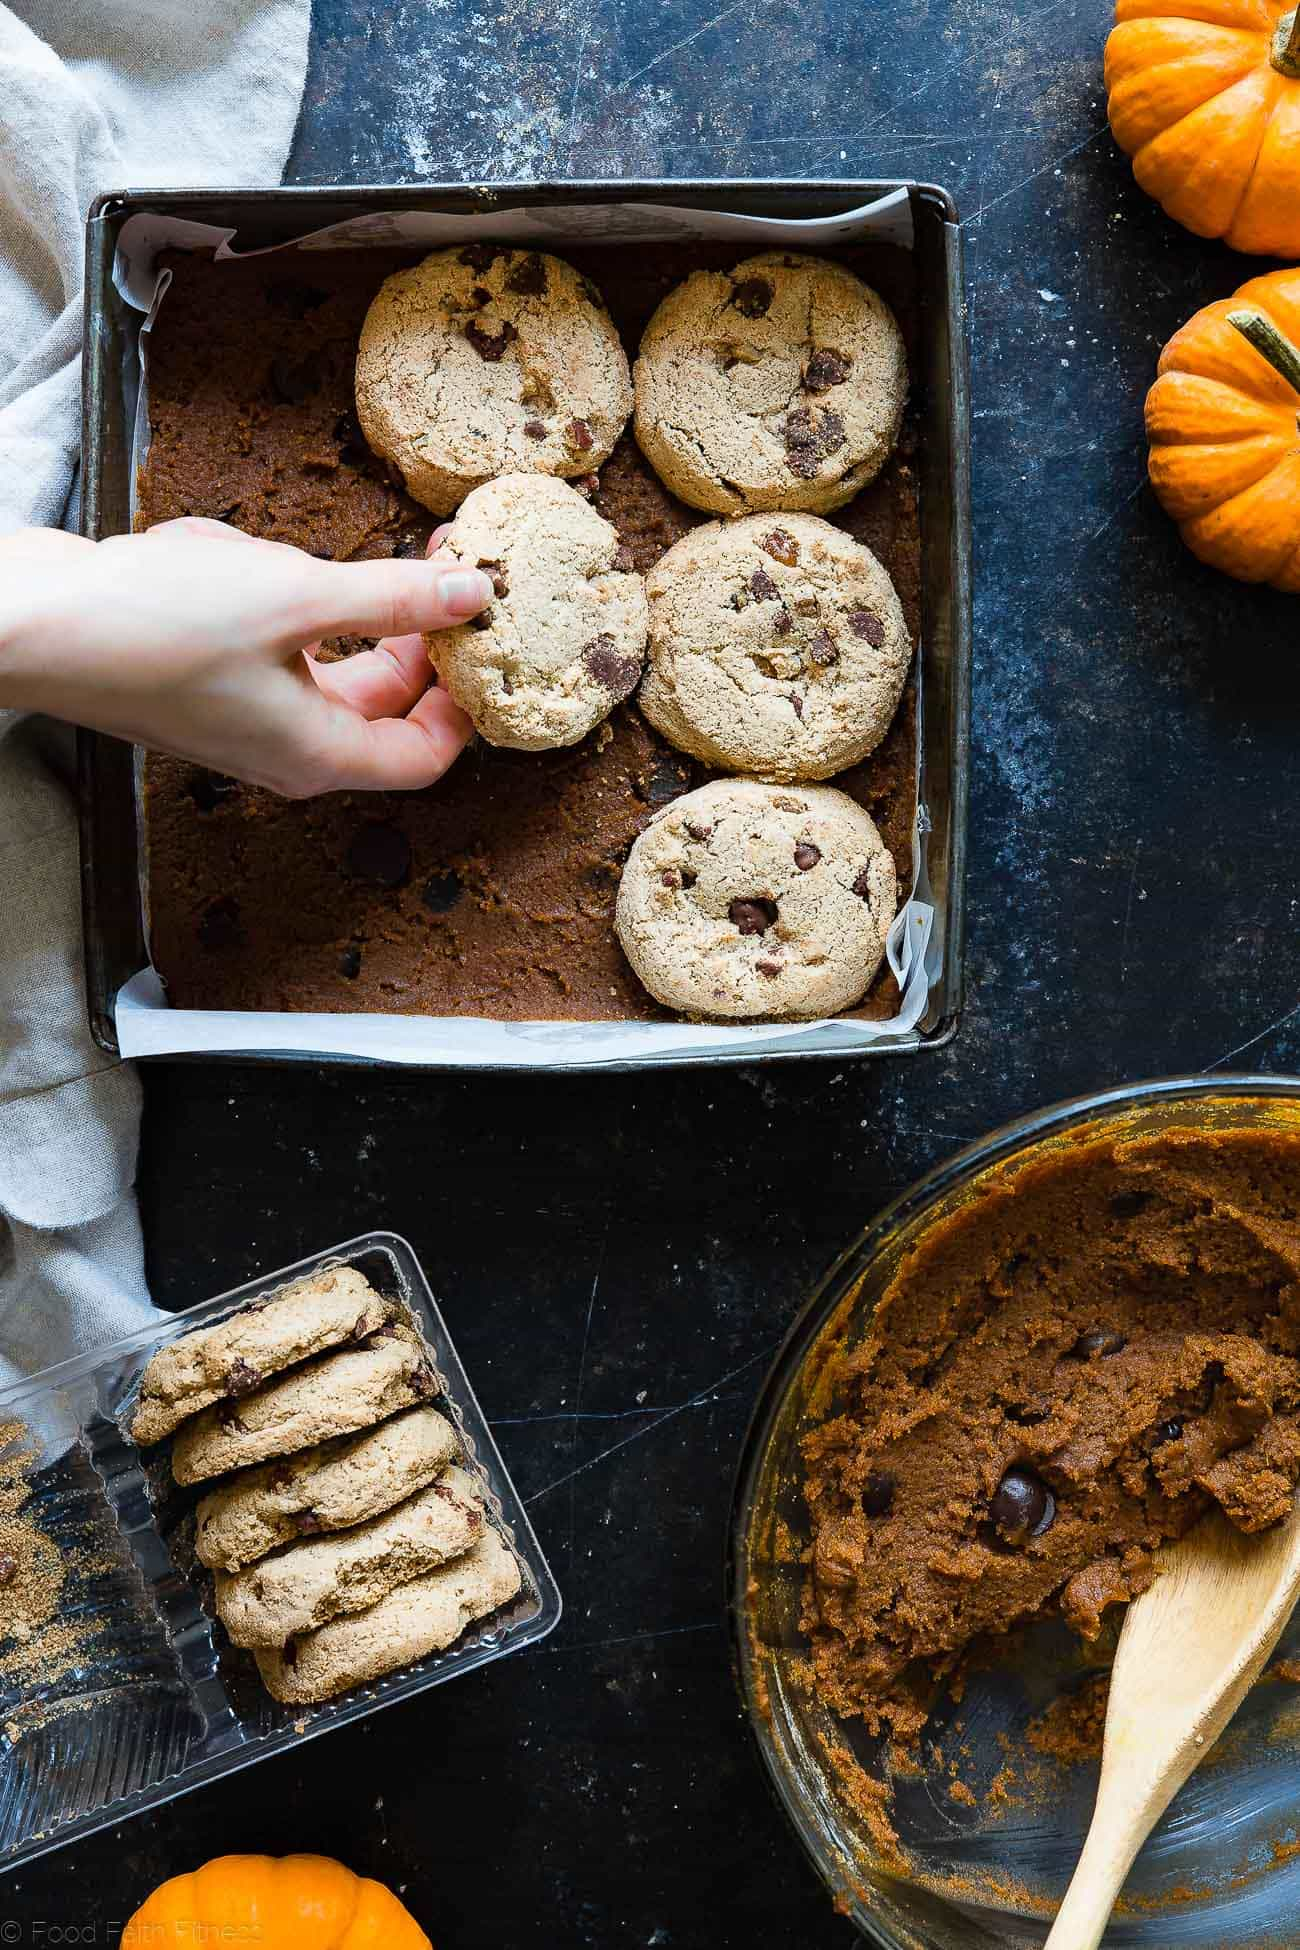 Cookie Stuffed Gluten Free Pumpkin Blondies - Cookies are baked right inside these healthier pumpkin brookies! They're so dense and chewy you'll never know they're gluten and dairy free! | Foodfaithfitness.com | @FoodFaithFit